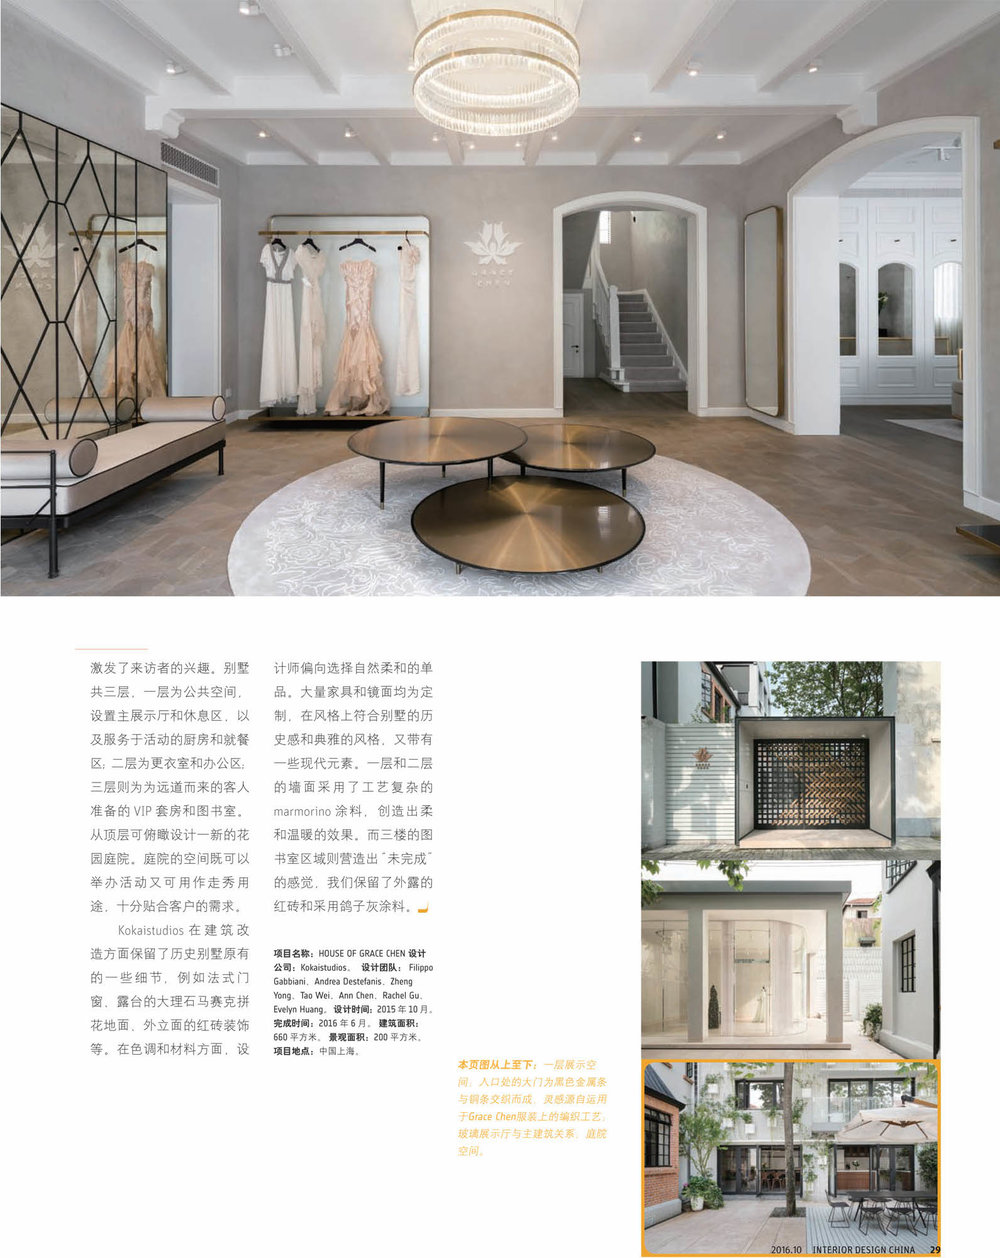 Interior Design China_201610_Grace Chen_3.jpg